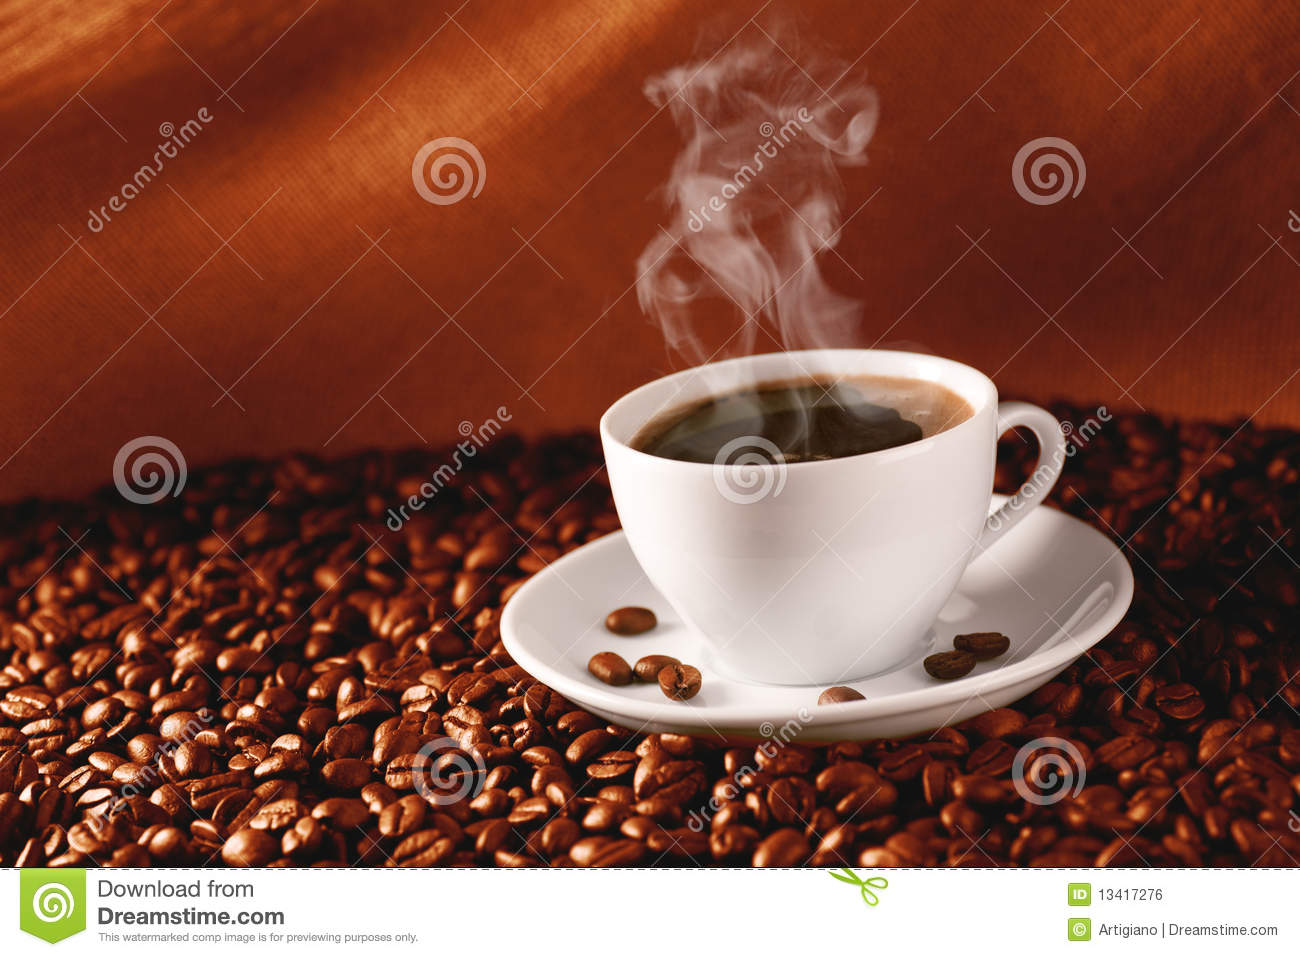 Coffee on coffee-beans